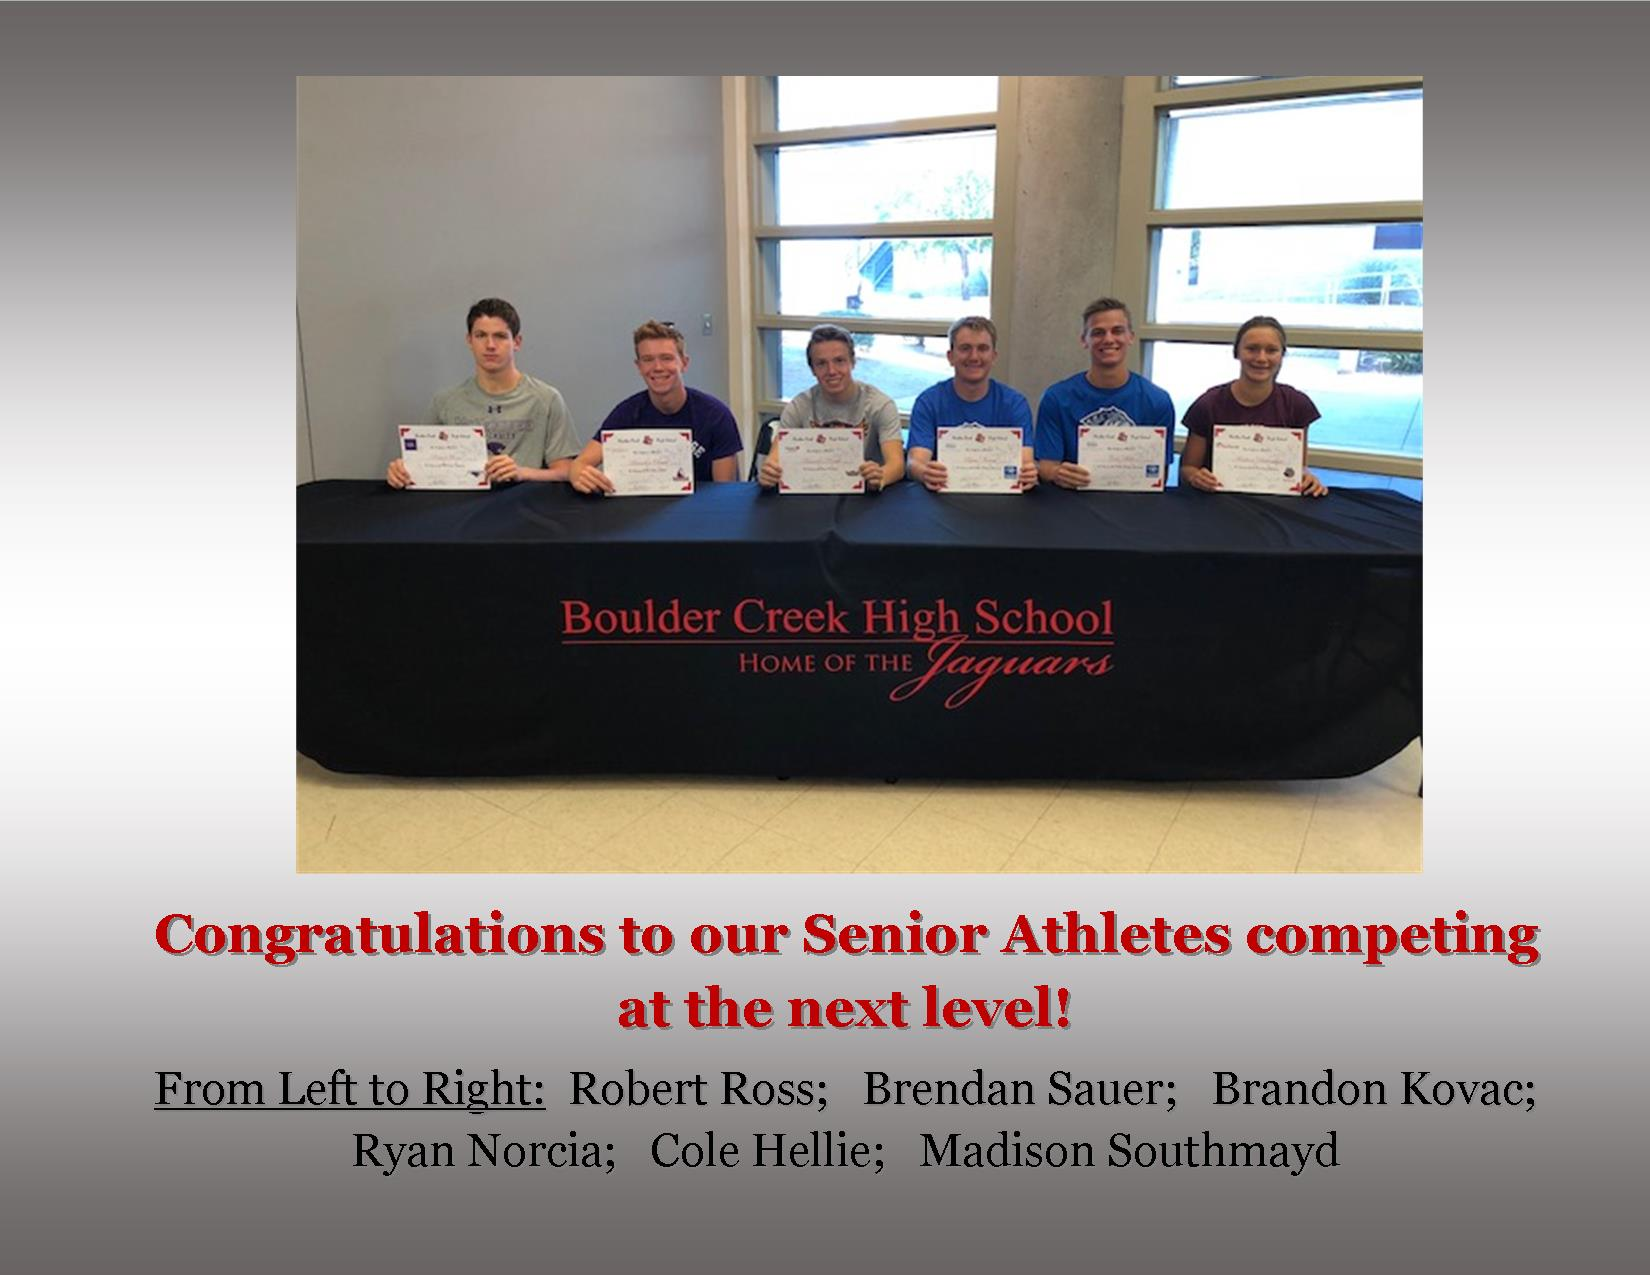 Congratulations to our Senior Athletes playing at the next level!!